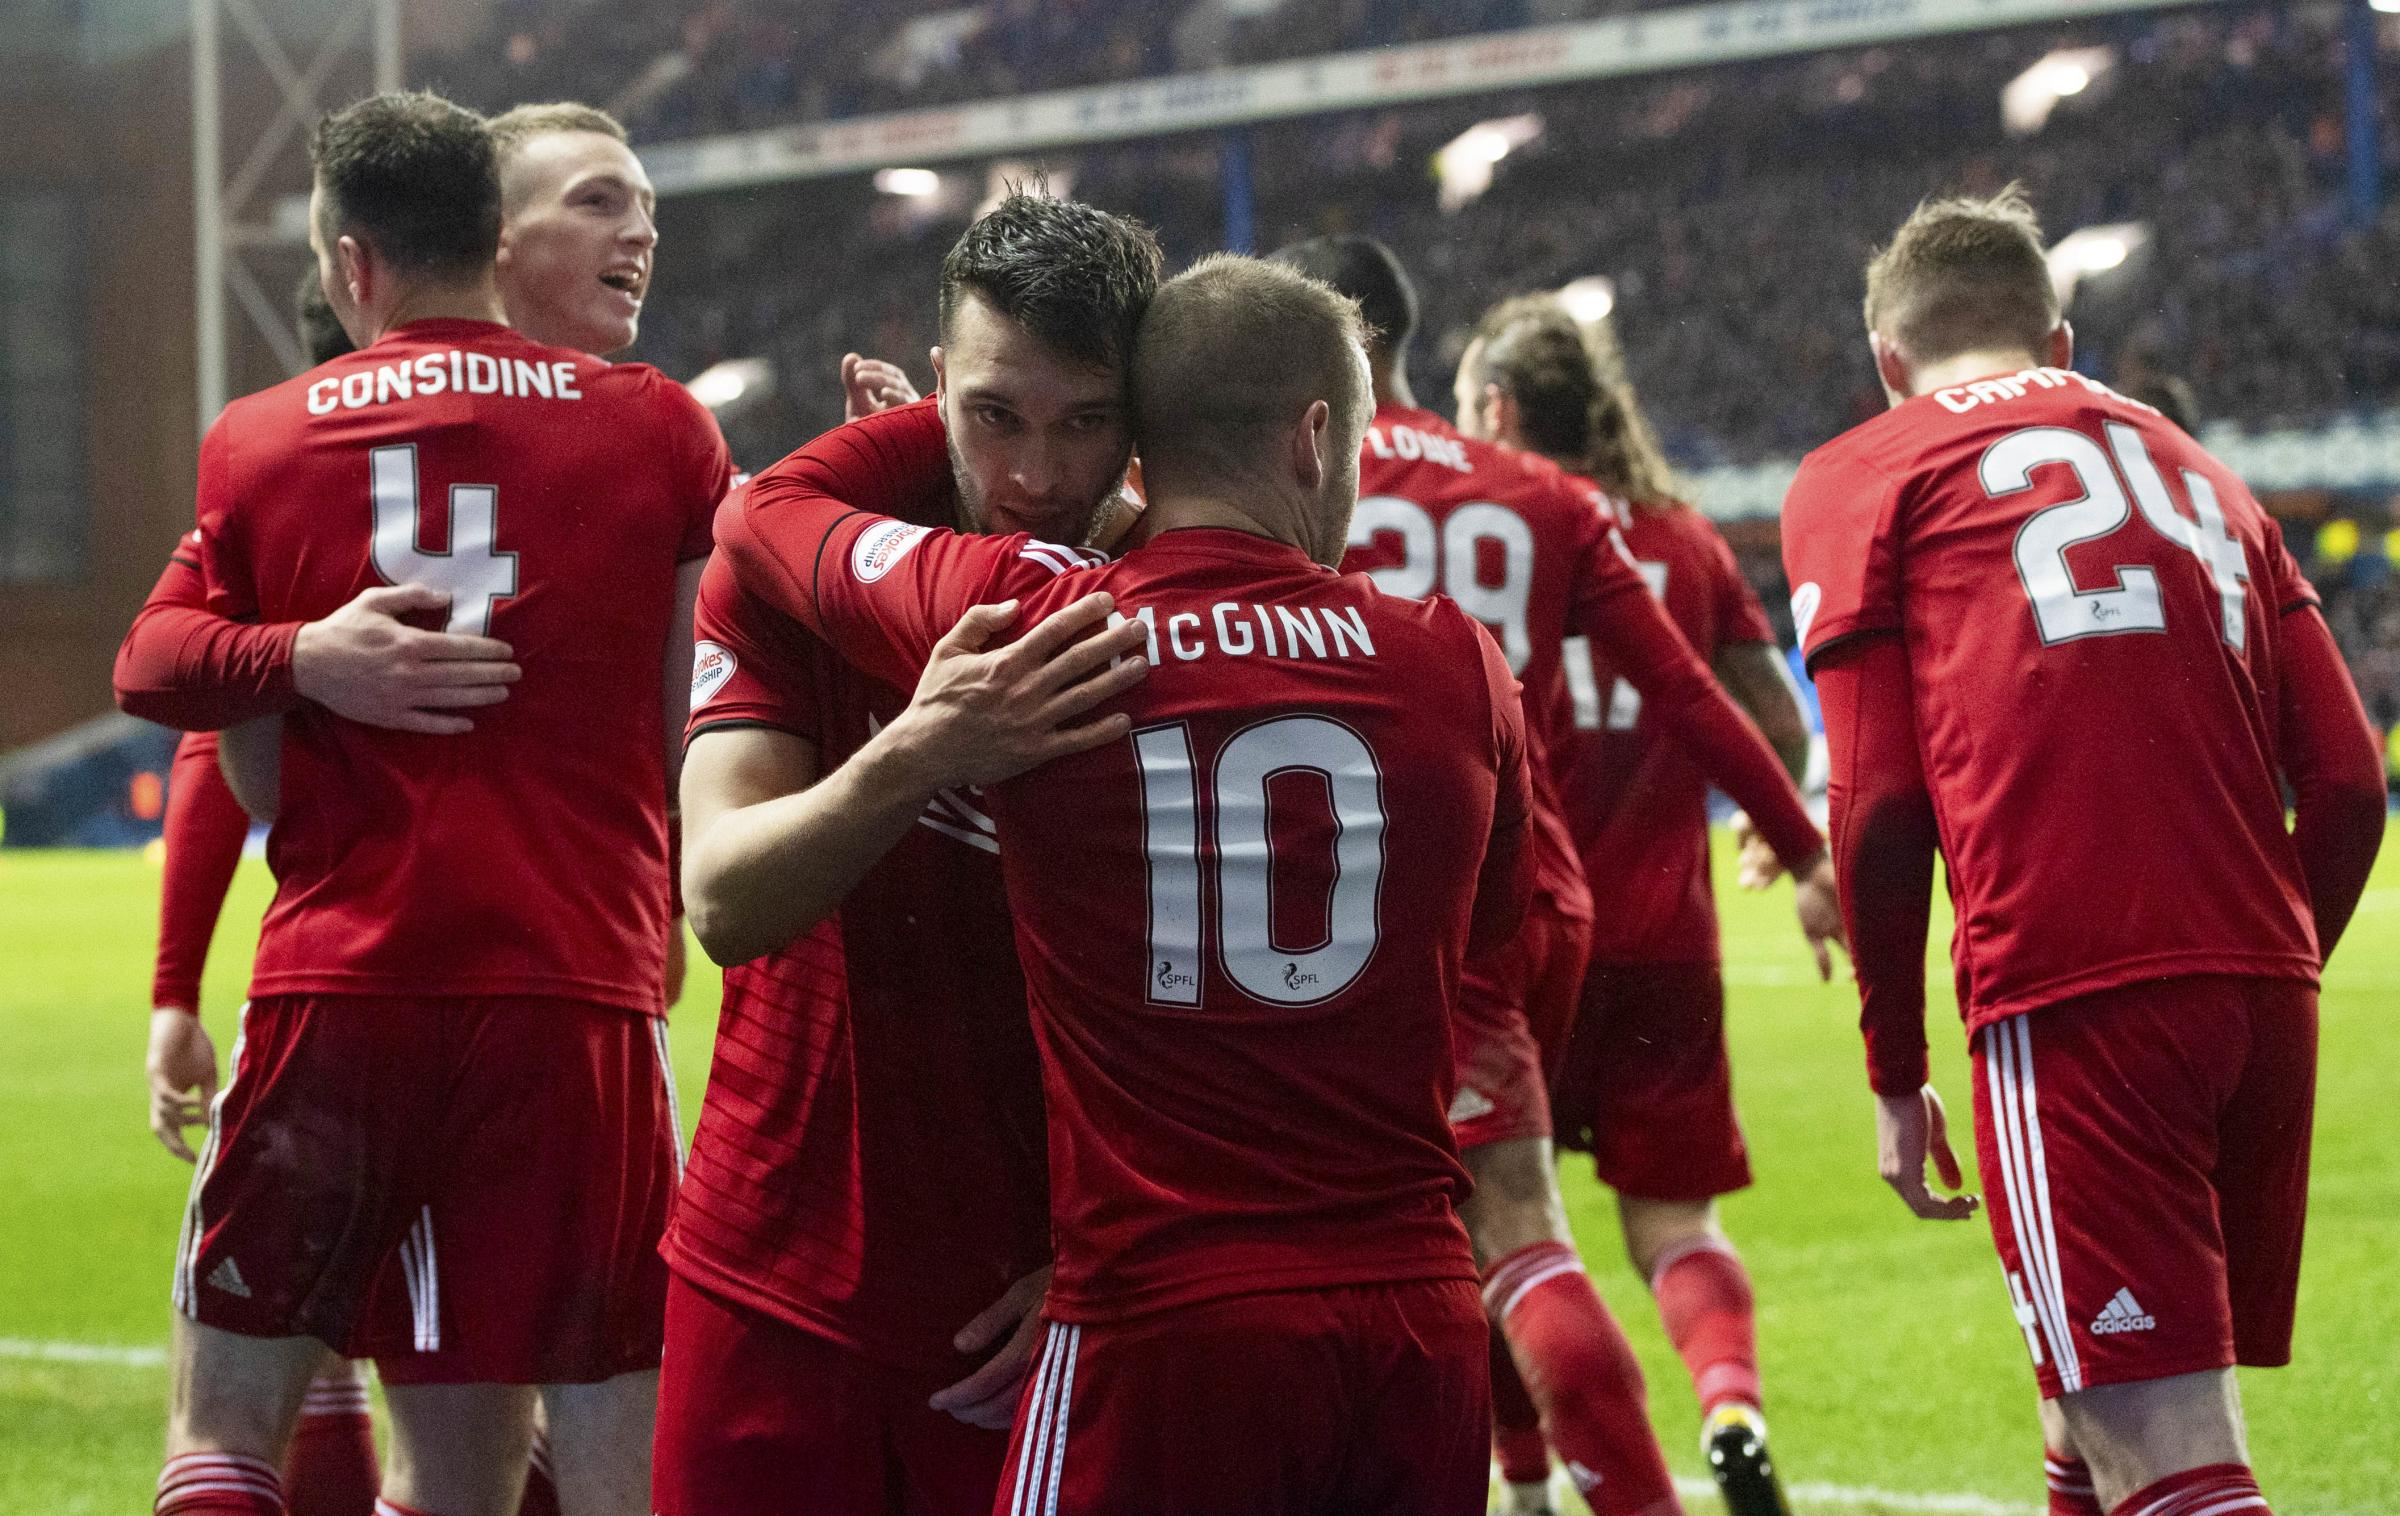 Aberdeen's Connor McLennan (left) celebrates with teammate Niall McGinn after his goal